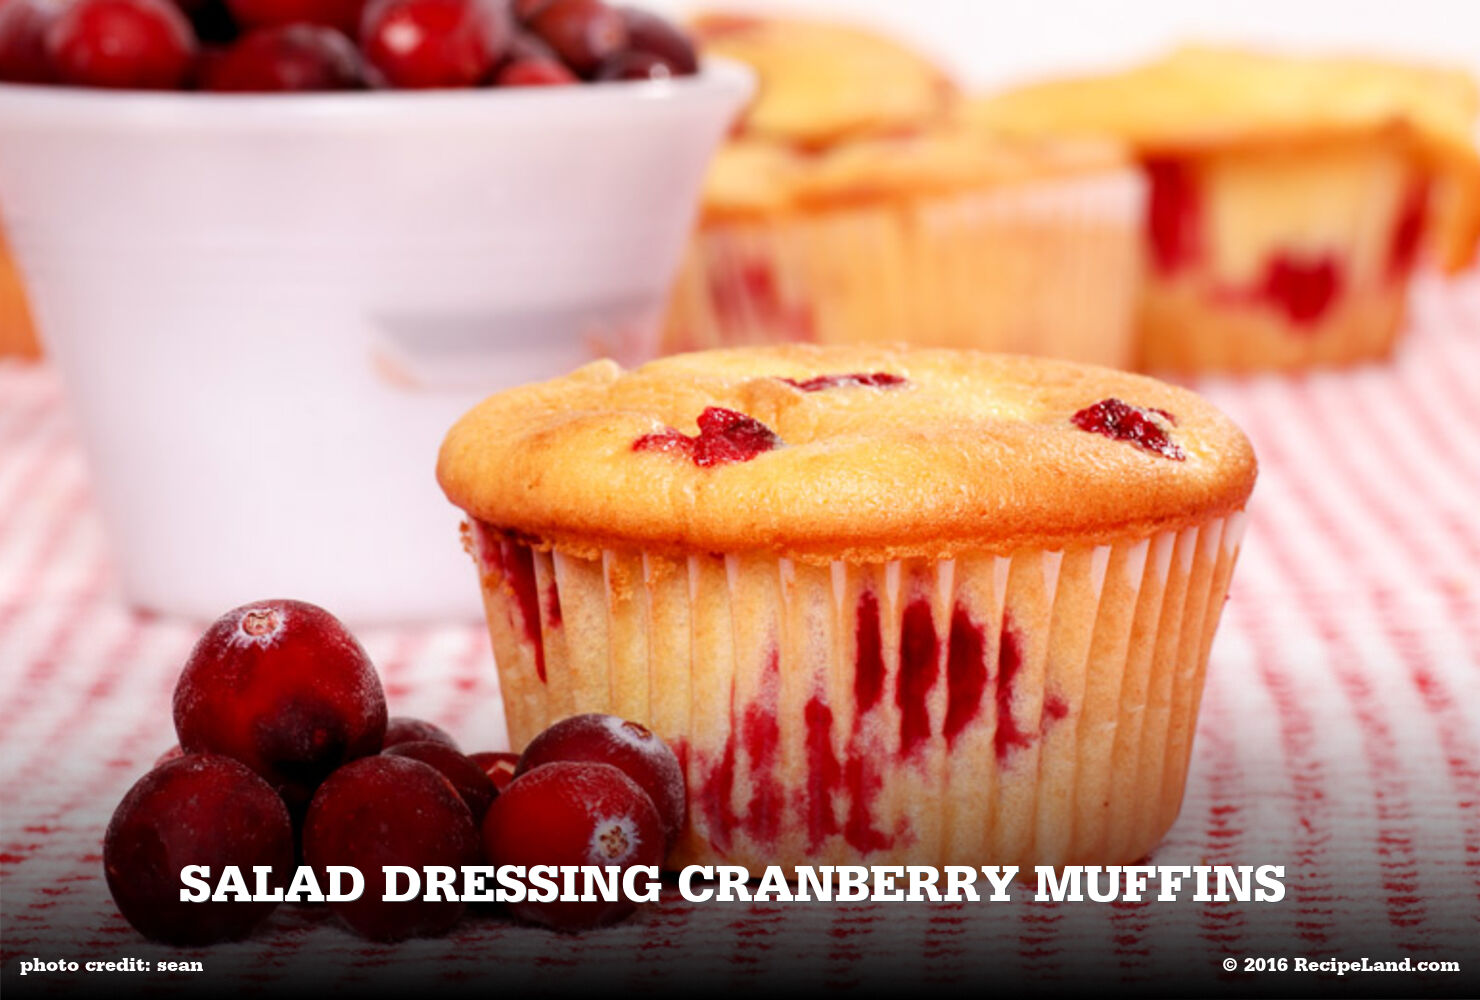 Salad Dressing Cranberry Muffins